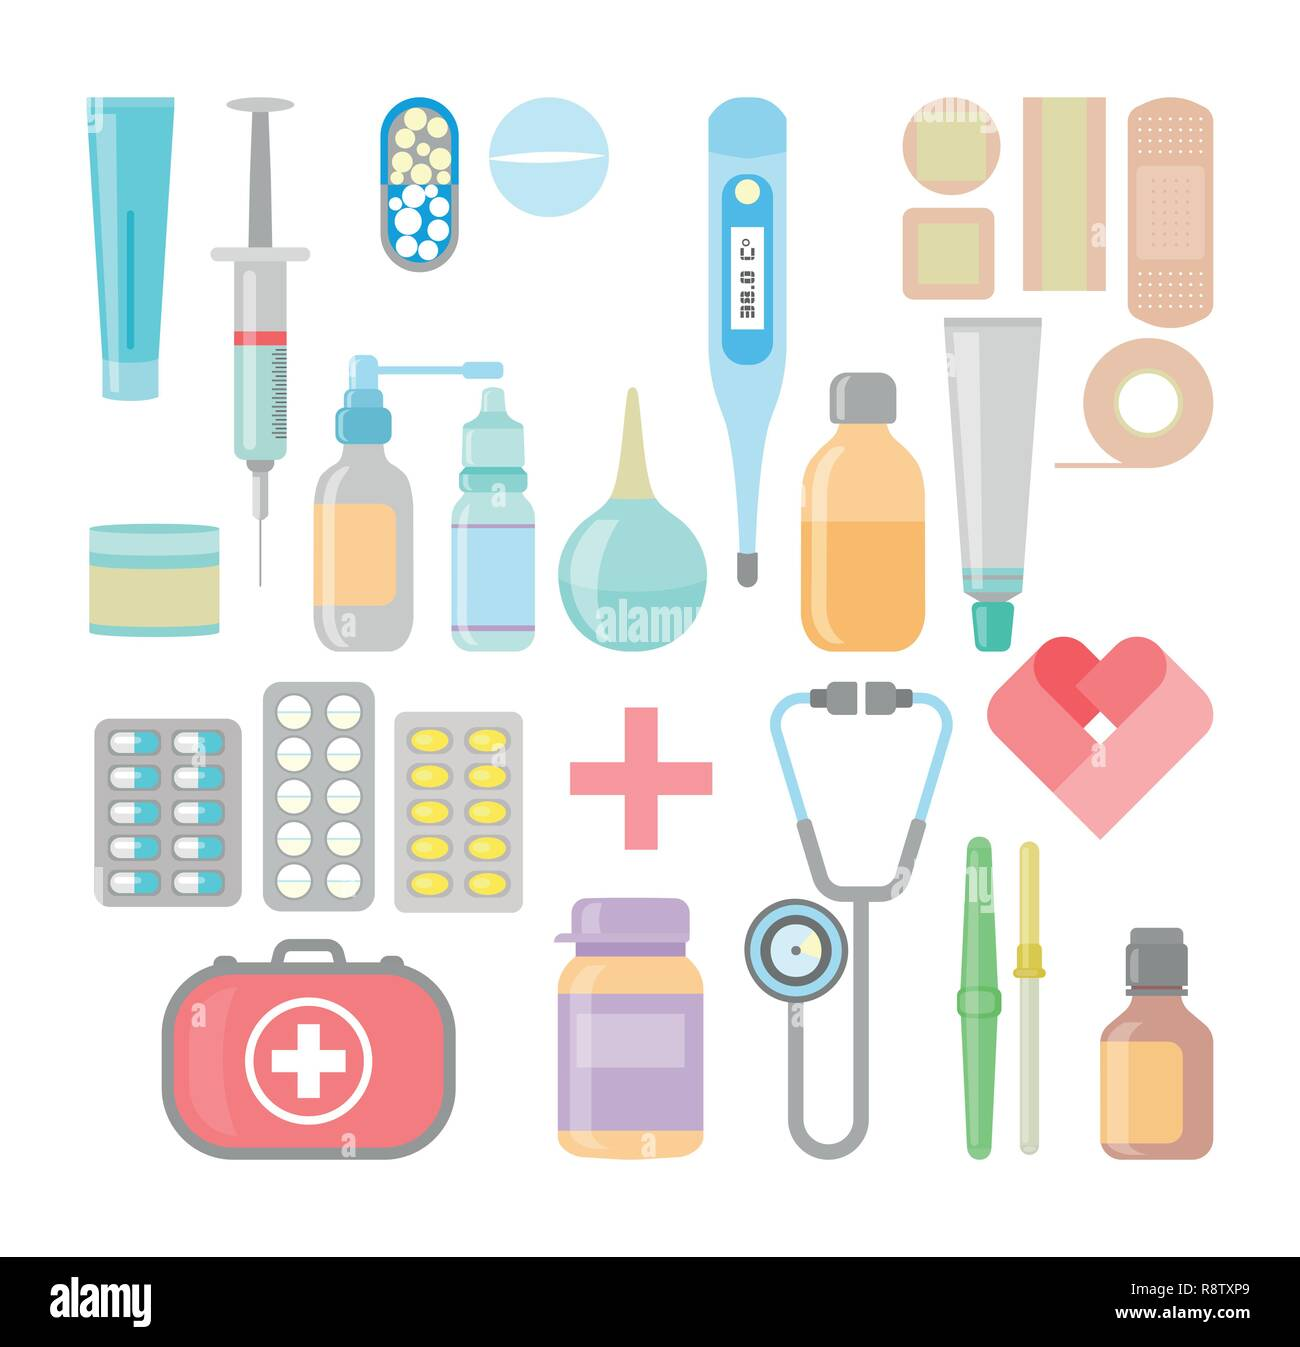 Medicine and drugs icon set in flat style - Stock Vector